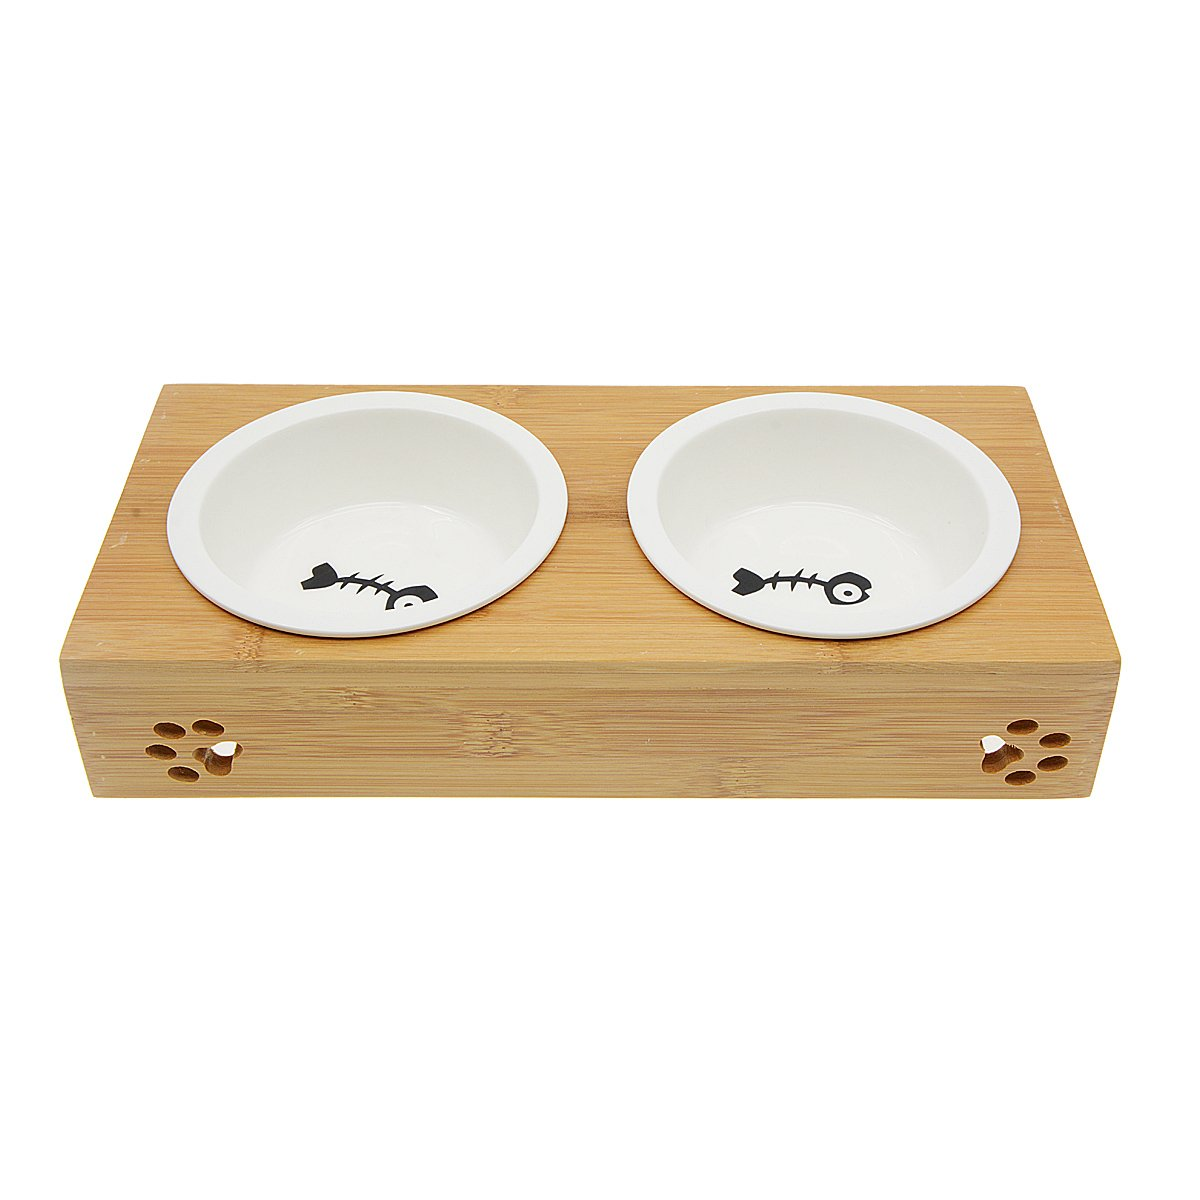 Saim Small Dogs and Cats Bowls Elevated Pet Feeder by Saim (Image #5)